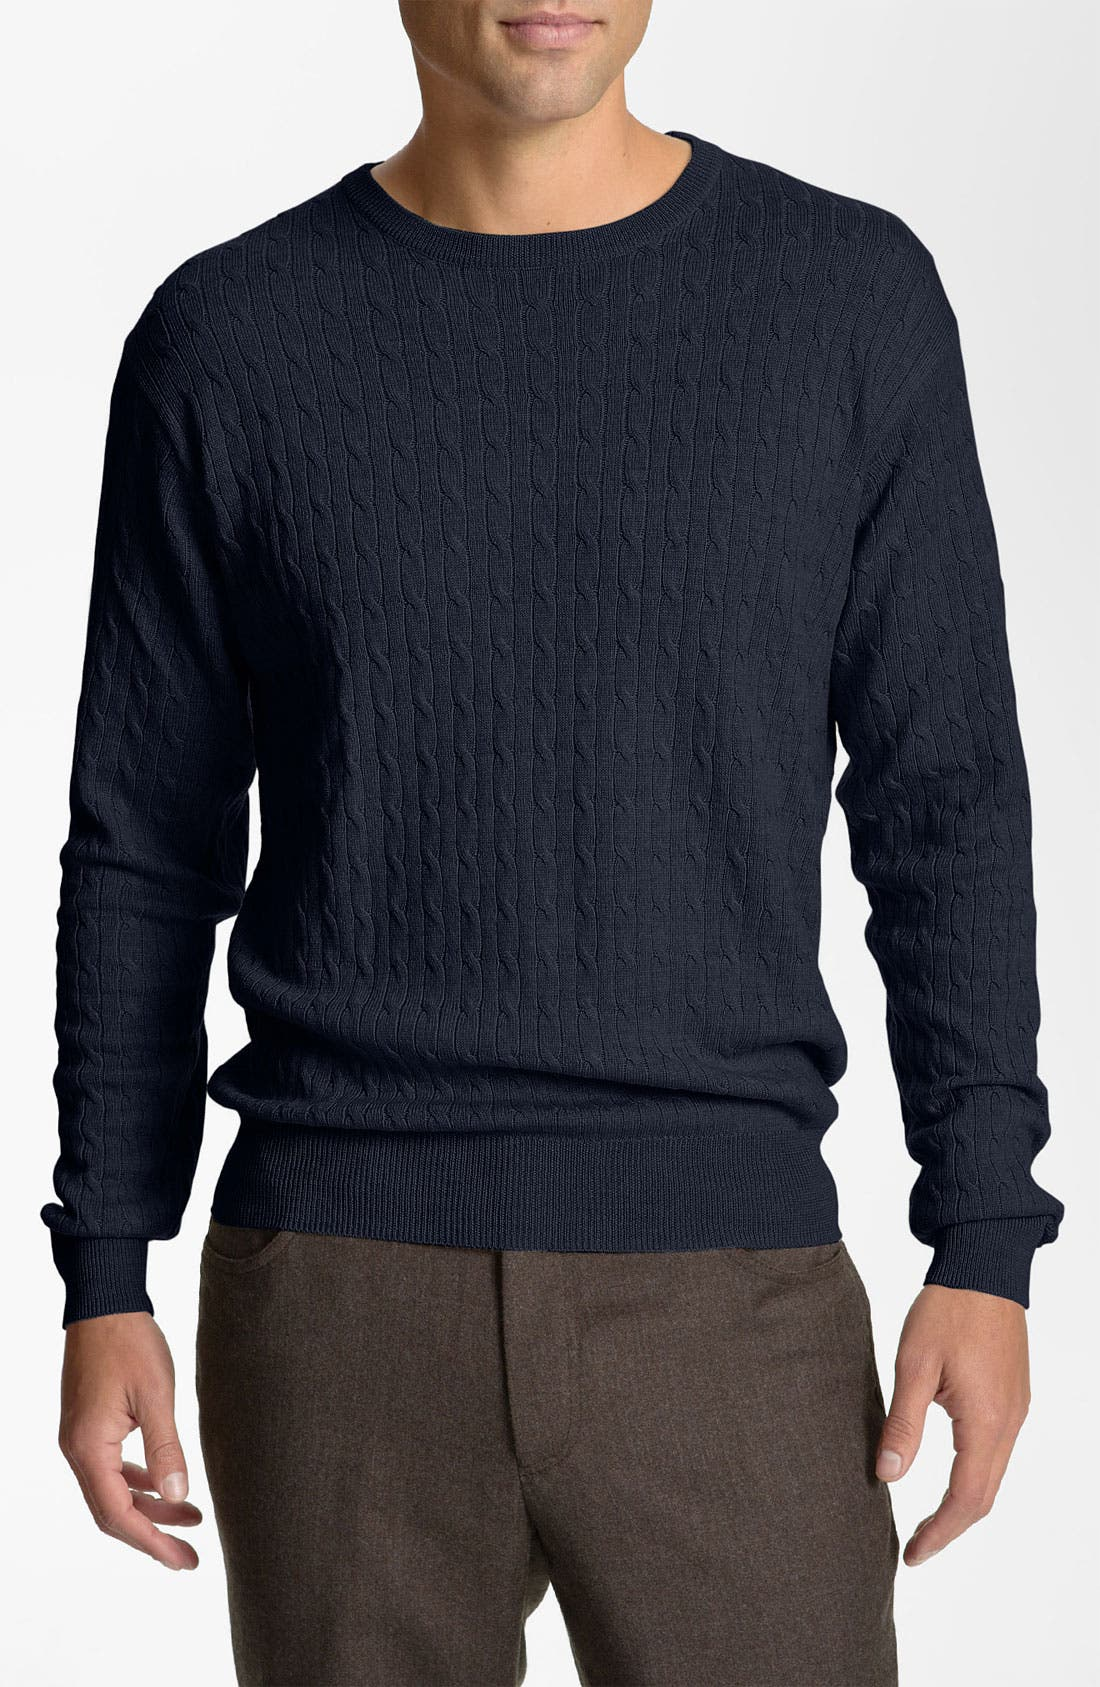 Alternate Image 1 Selected - Peter Millar Cable Knit Merino Wool Sweater (Nordstrom Exclusive)